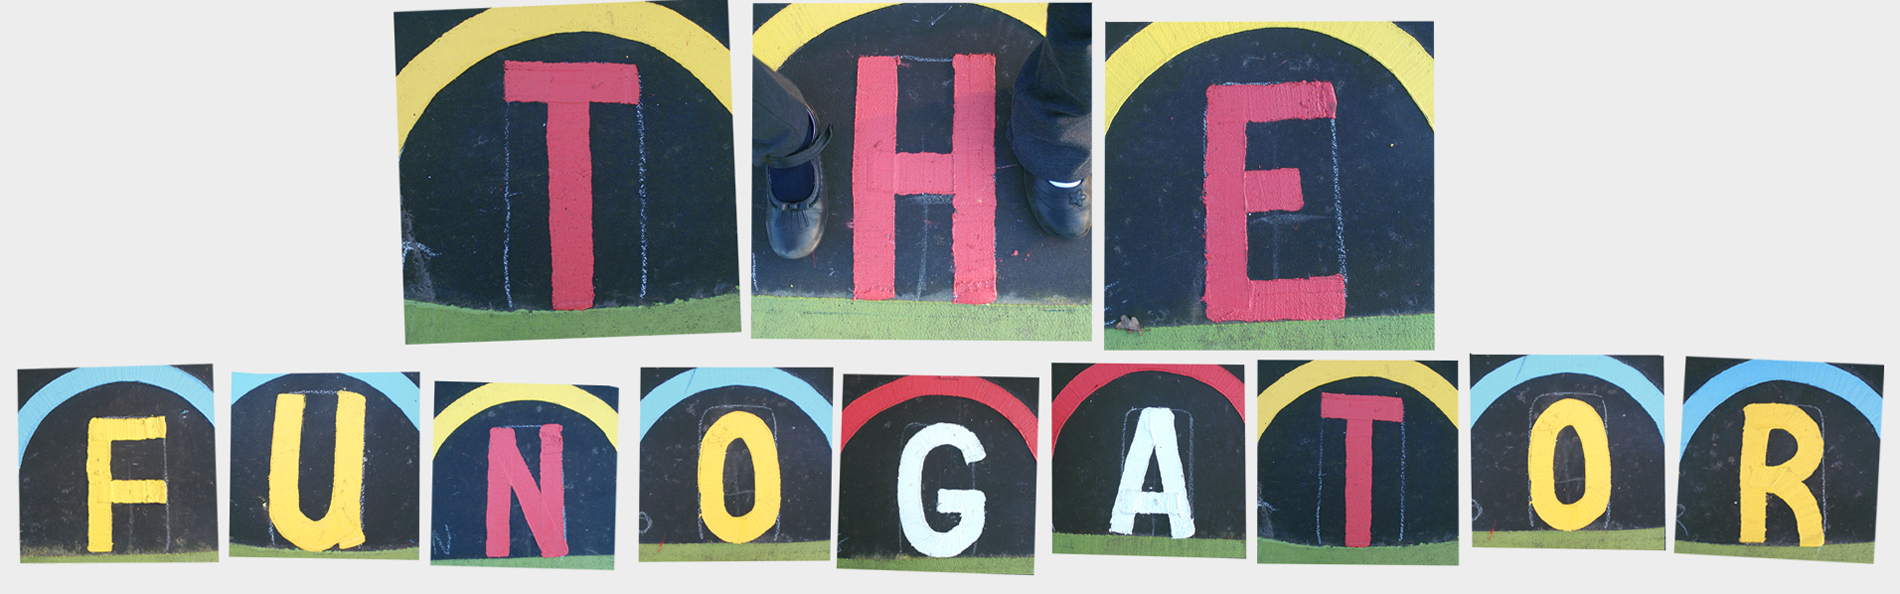 - The Funogator is an activity and learning space designed for Holt Community Primary School. The design includes numerous playground games and activities as well and maths and alphabet games.